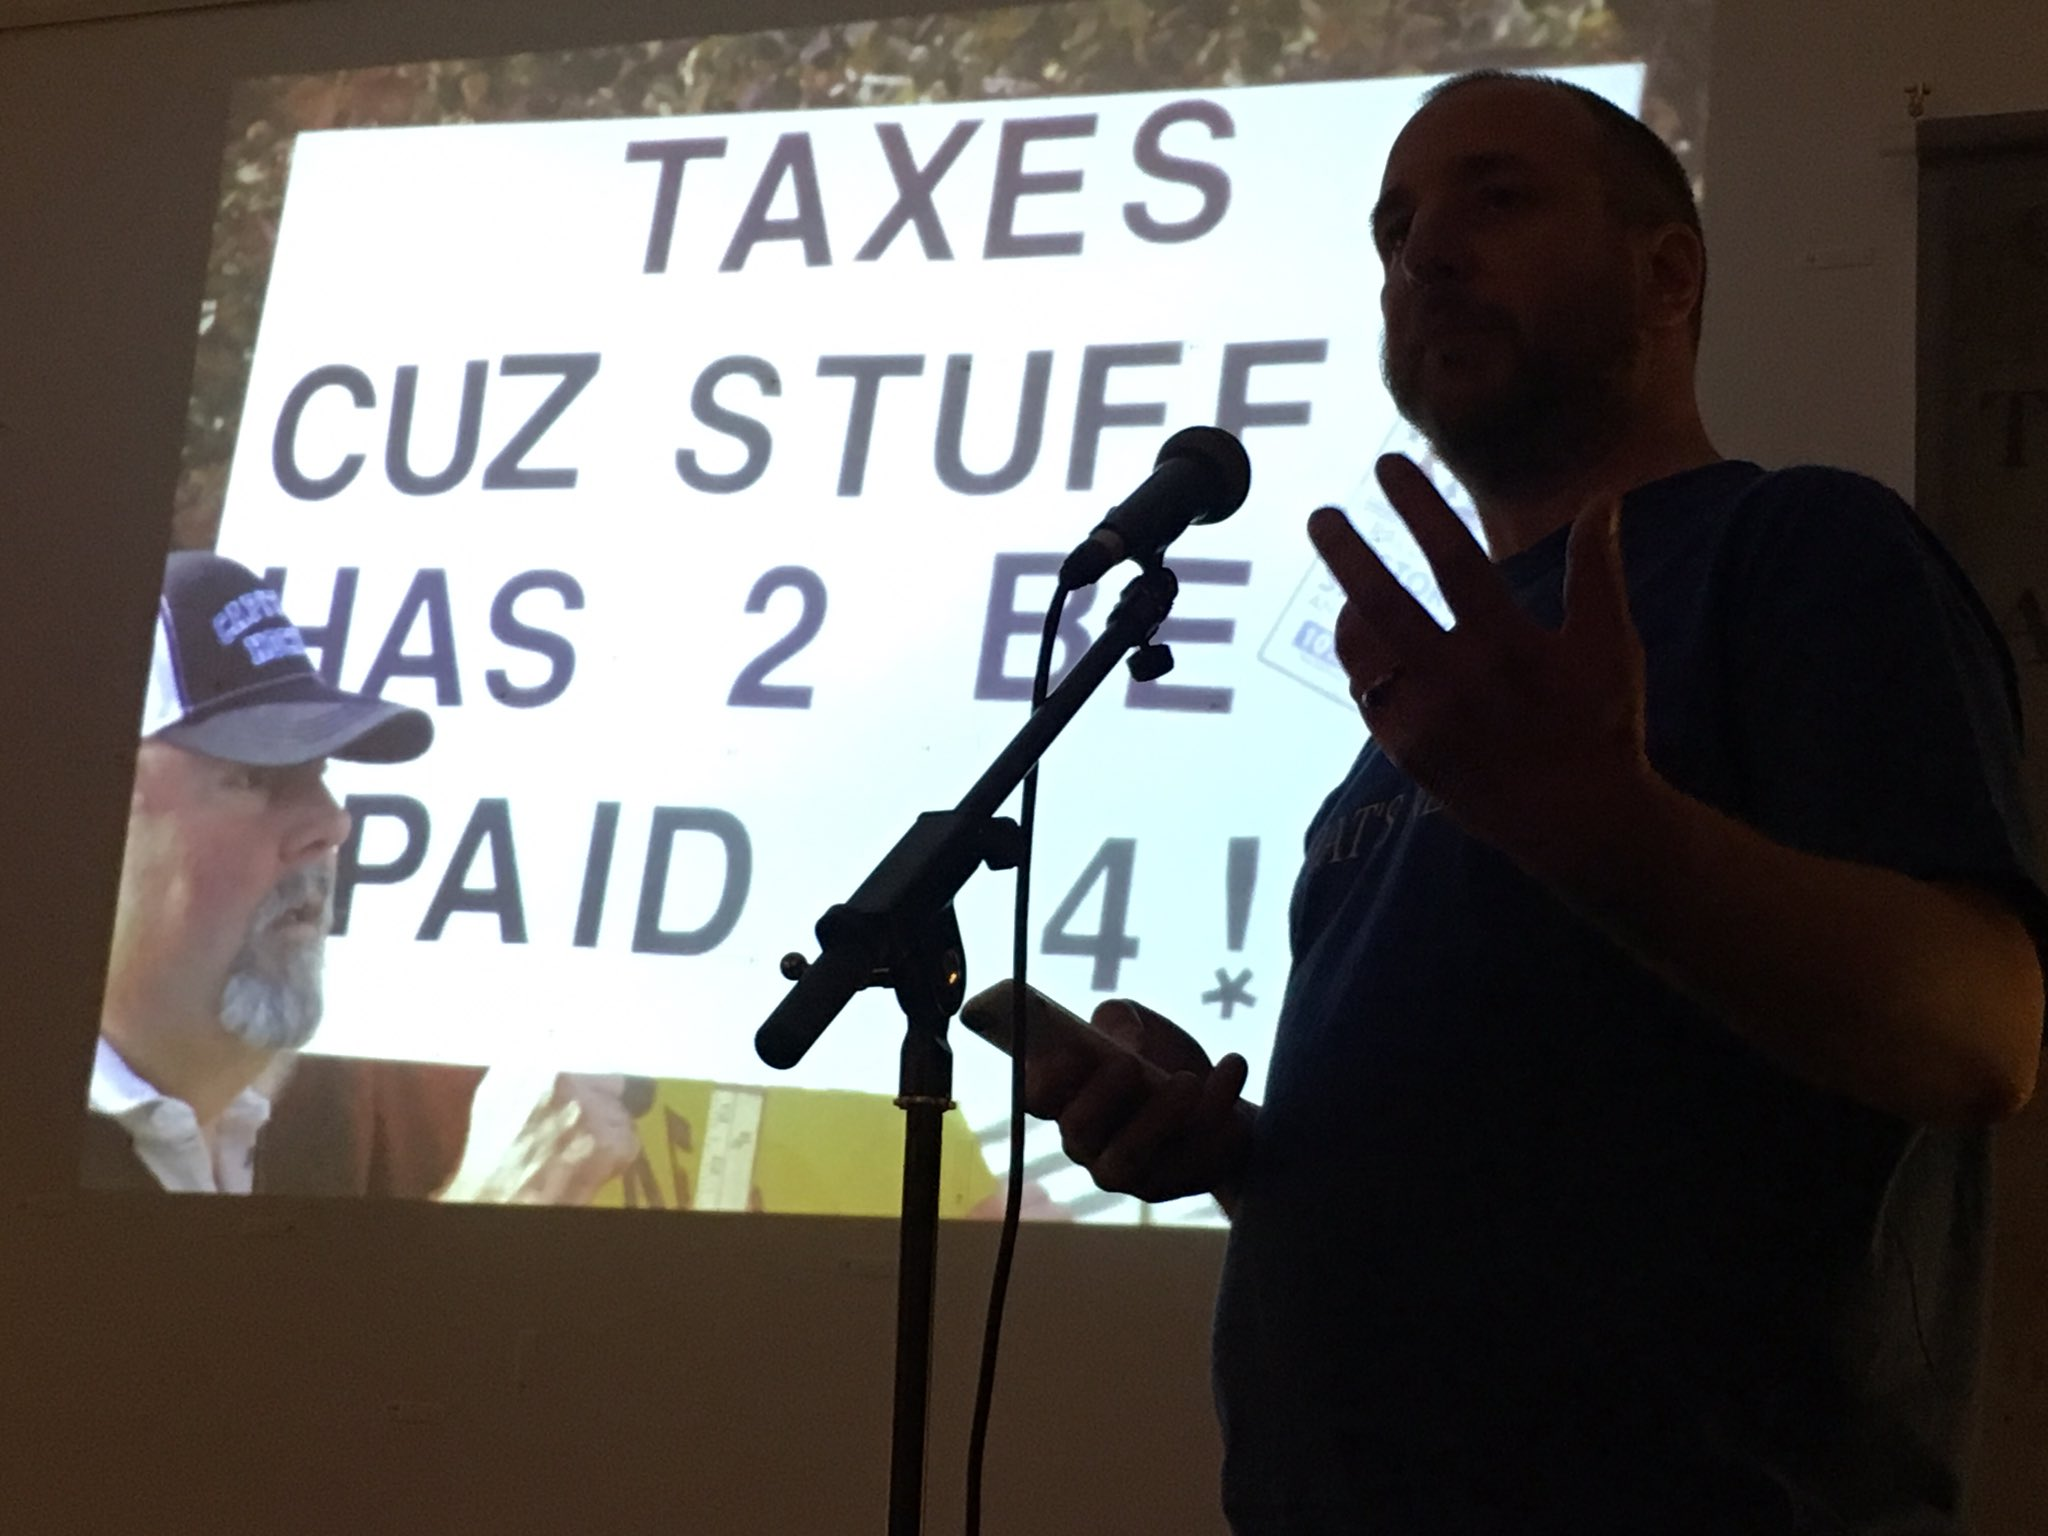 """""""Guess what? People didn't really like paying taxes."""" #Notwestminster https://t.co/N9EgmbQ7o8"""